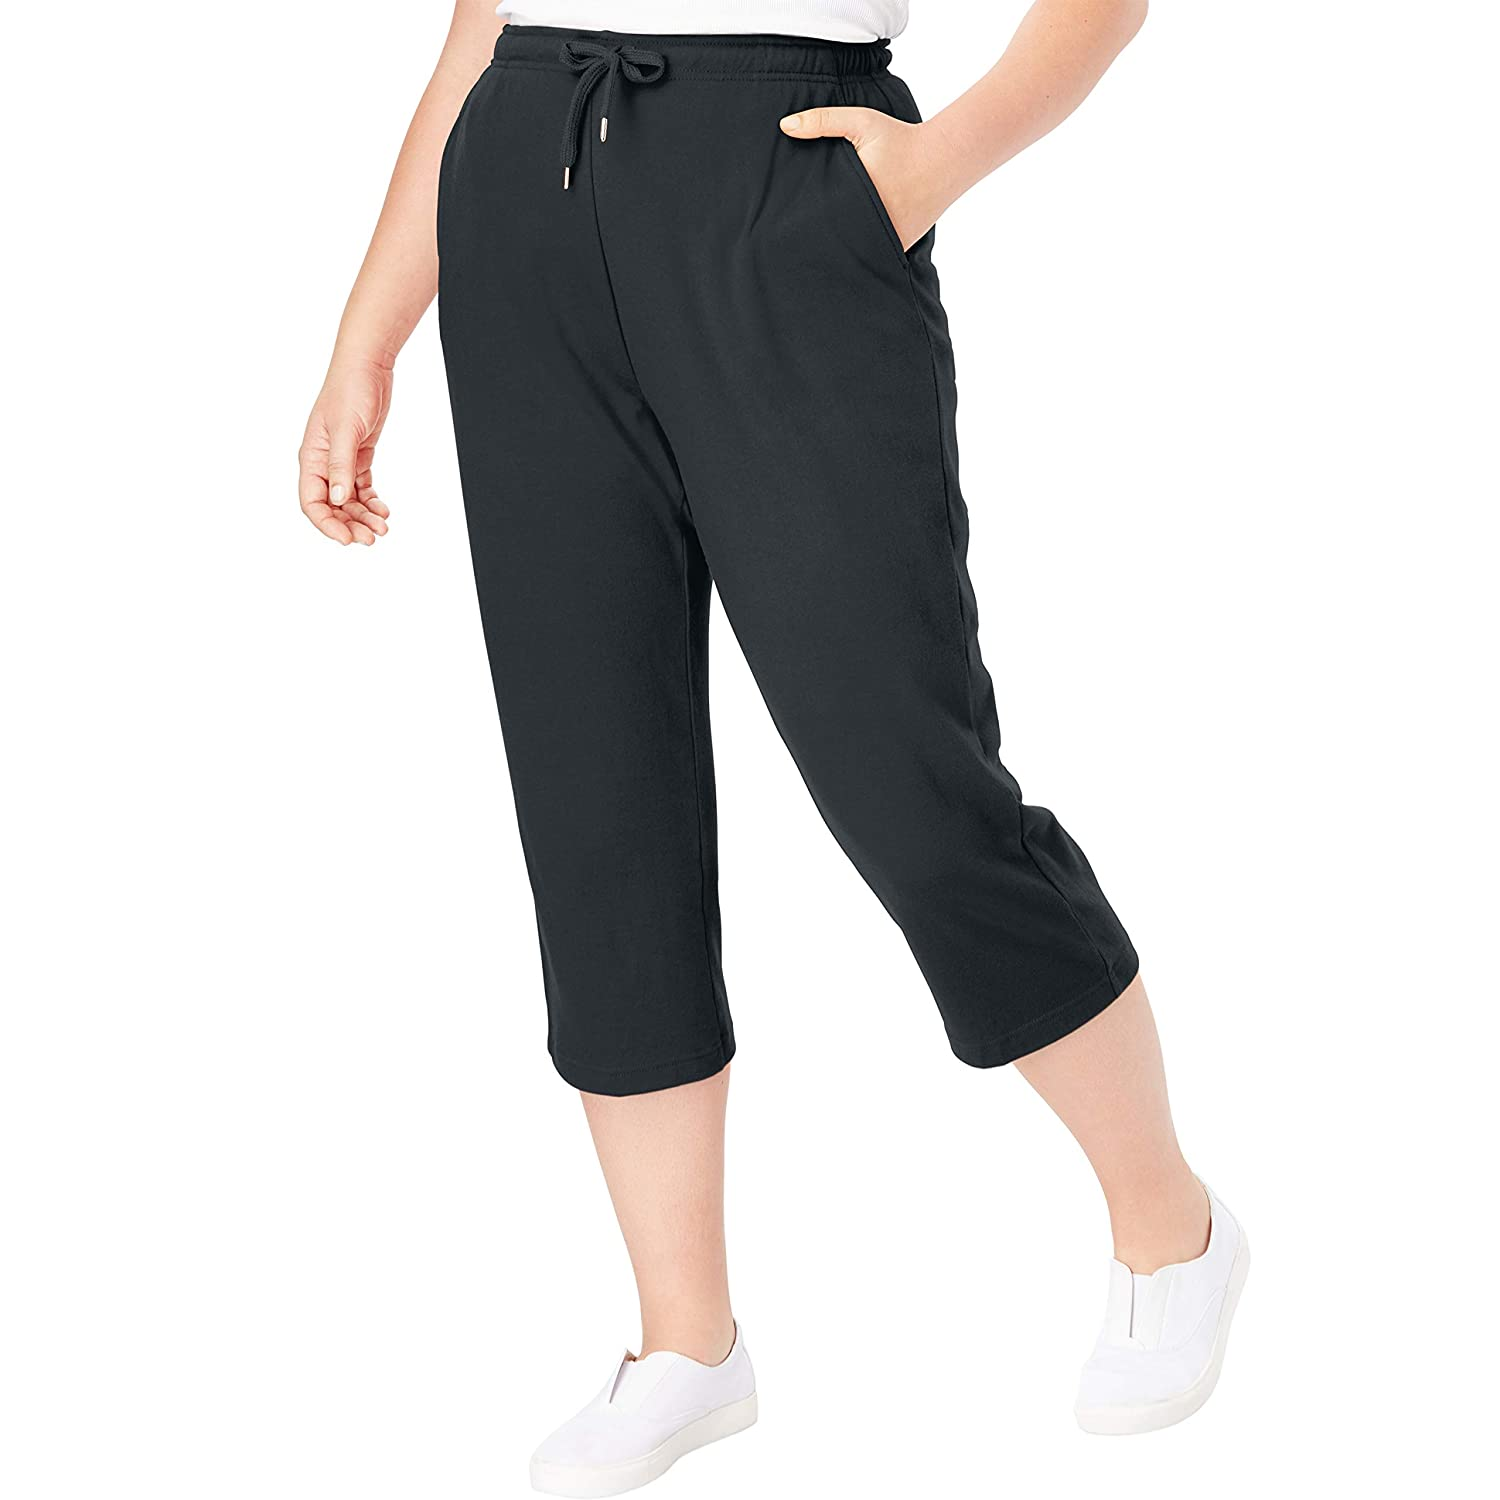 5d7b206880 Woman Within Women s Plus Size Sport Knit Capri Pant at Amazon Women s  Clothing store  Woman Within Pants